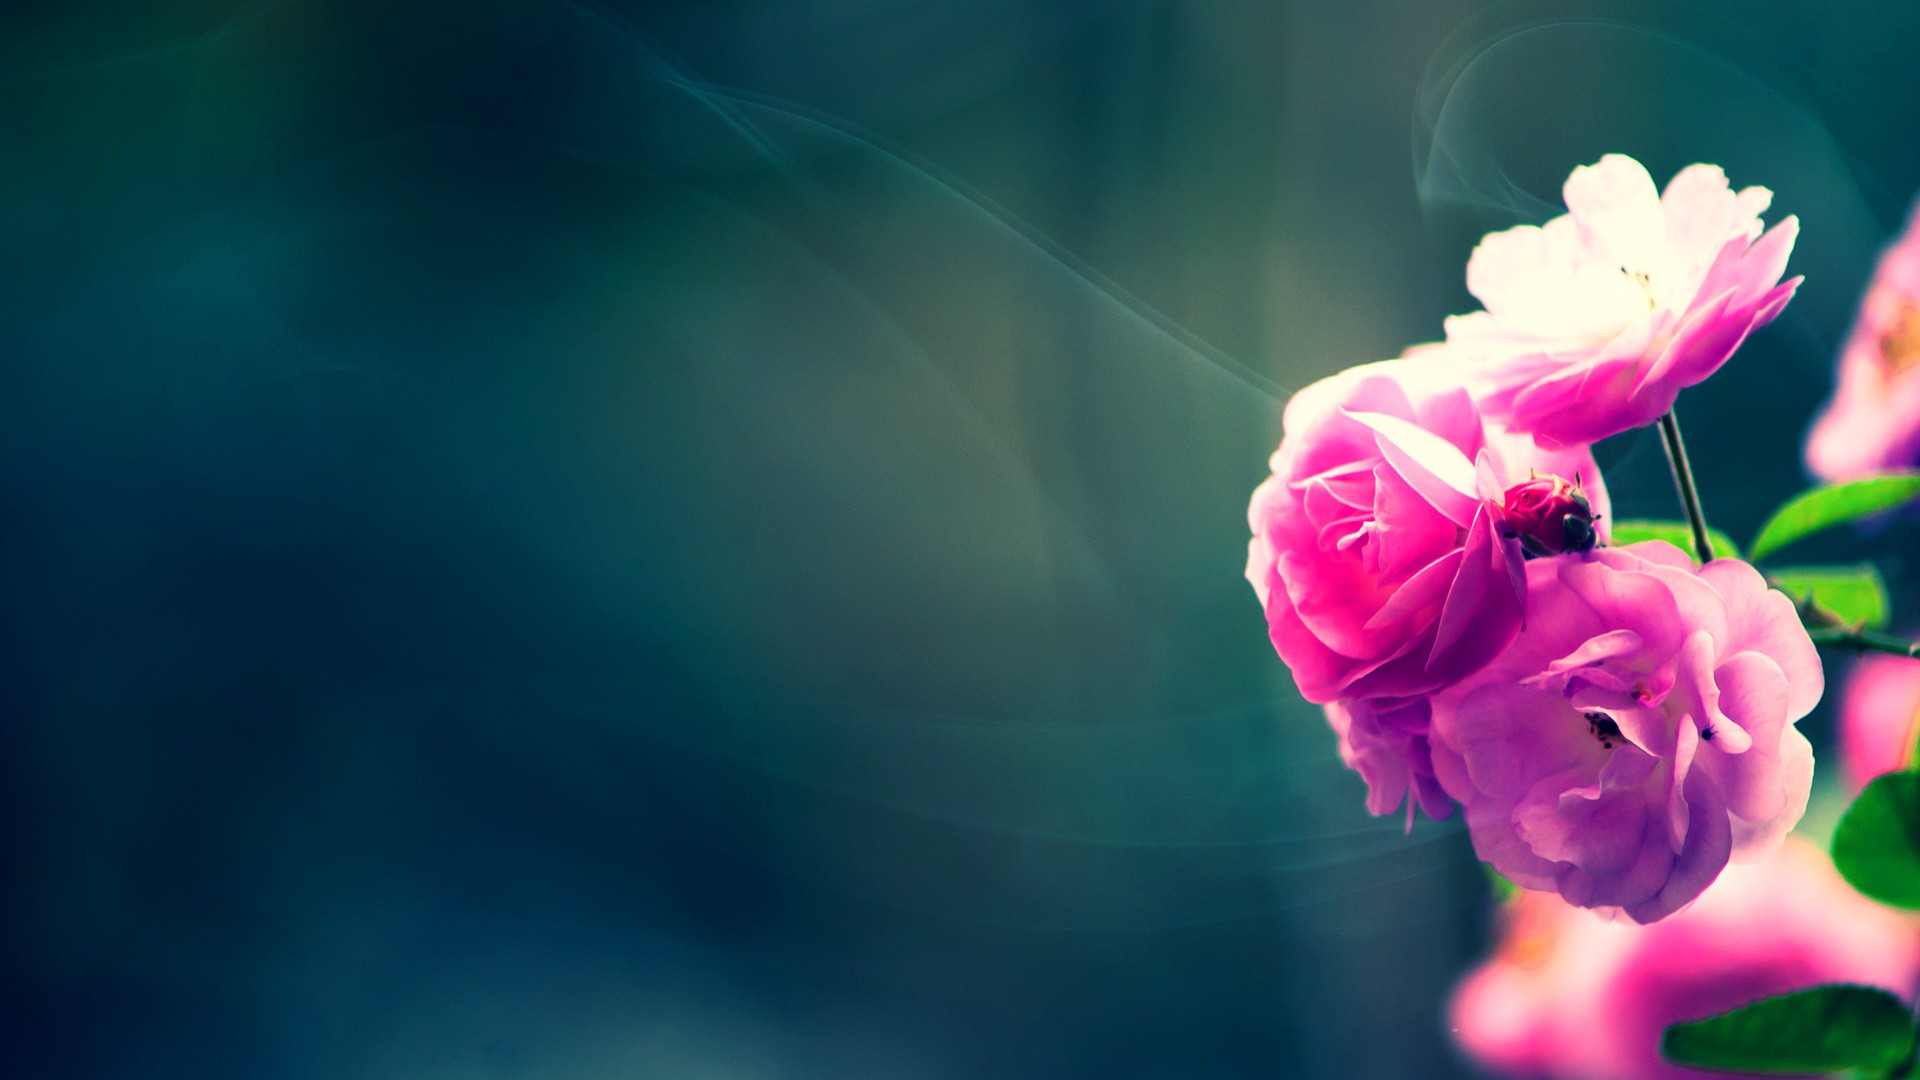 wallpaper vintage flower hd